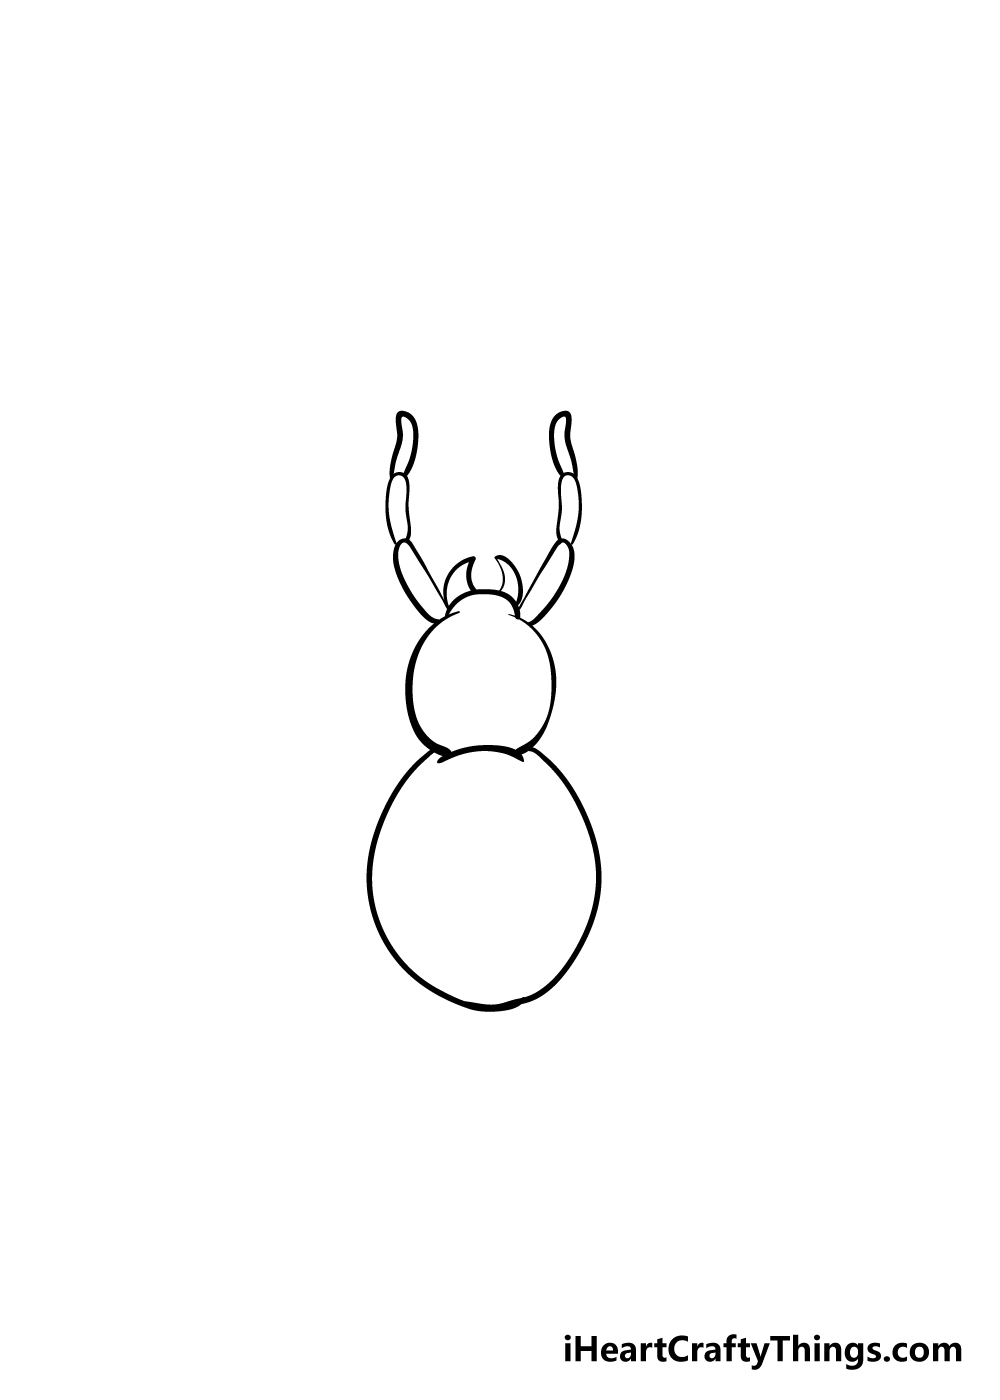 spider drawing step 3